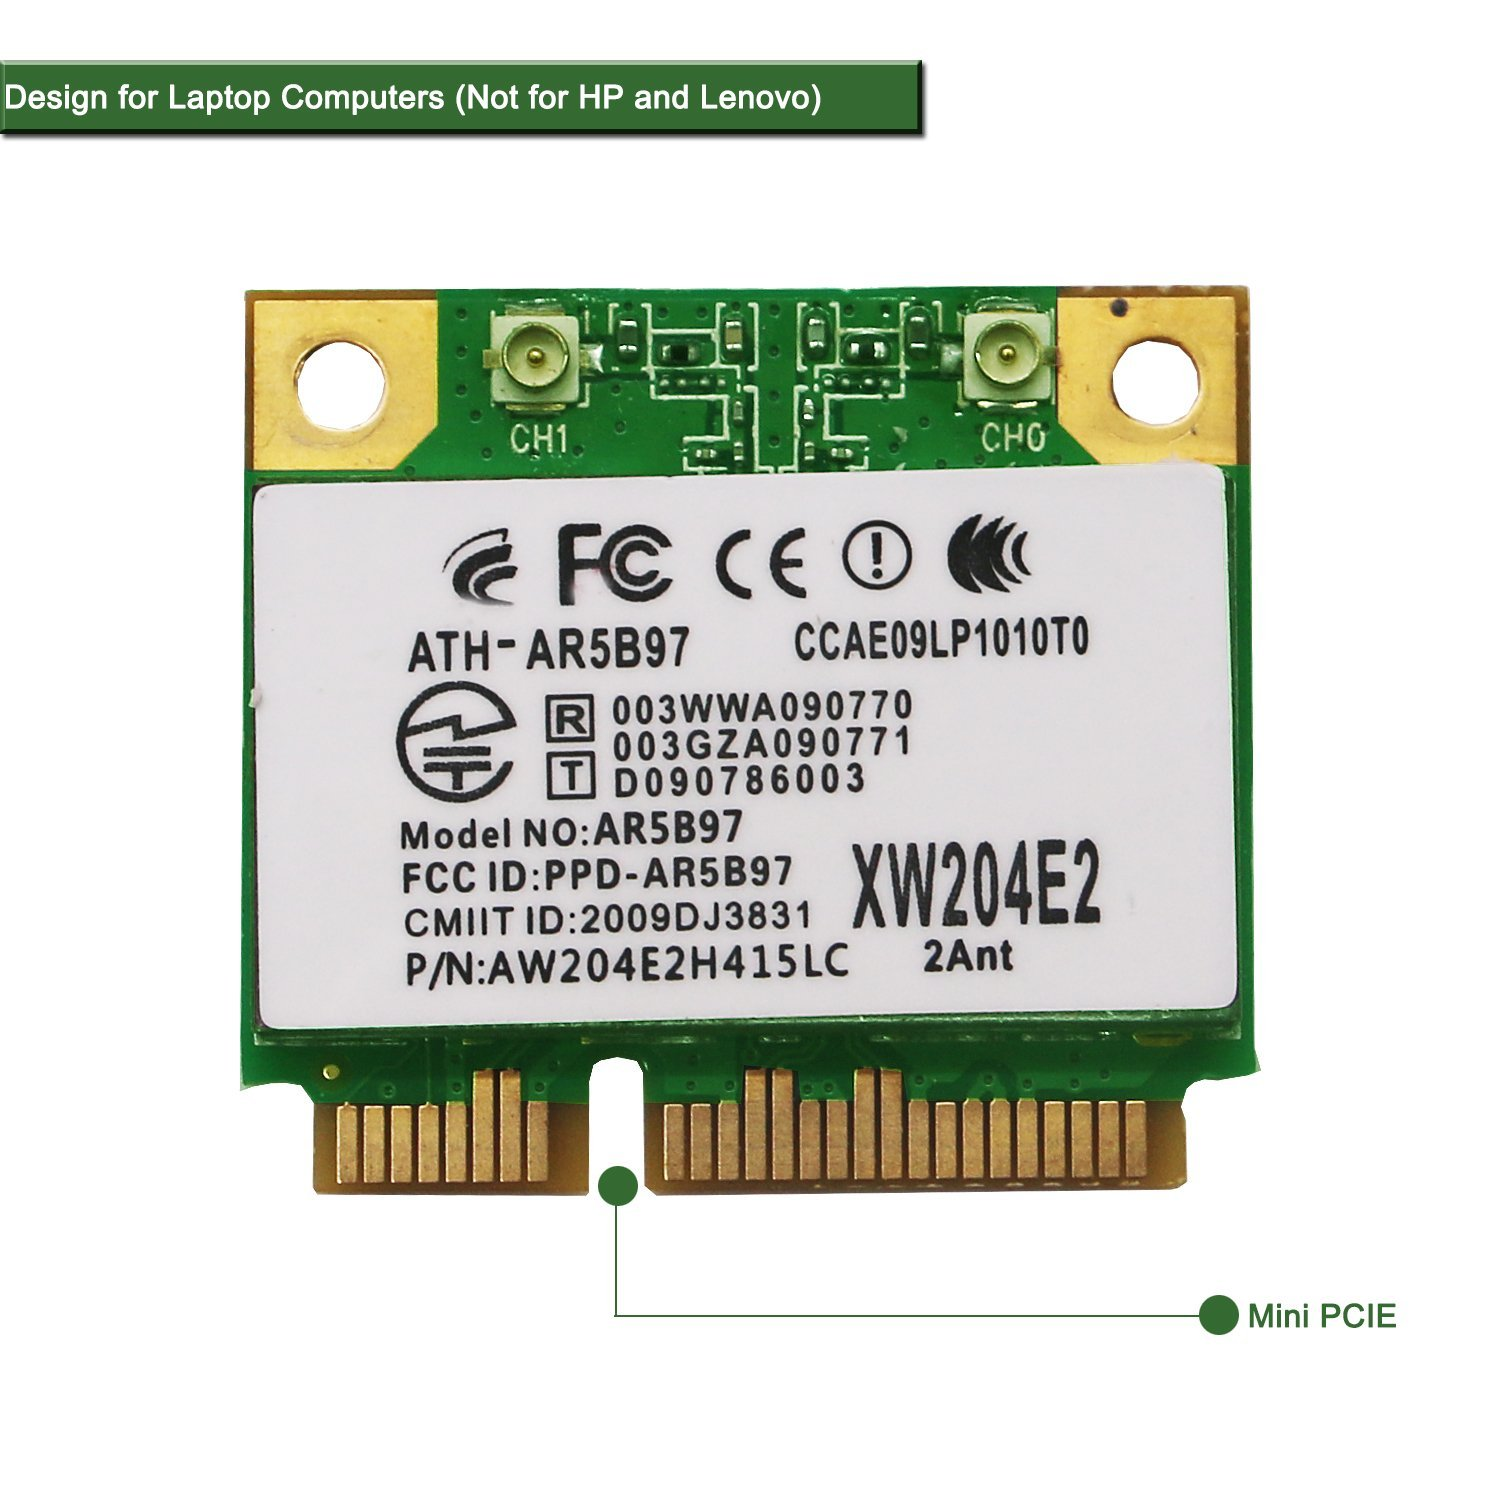 Netely Adaptador De Red Inalambrico Para Laptop-qualcomm Atheros Ar9287 Ar5b97 Adaptador De Red Inalambrico  Mini Pci